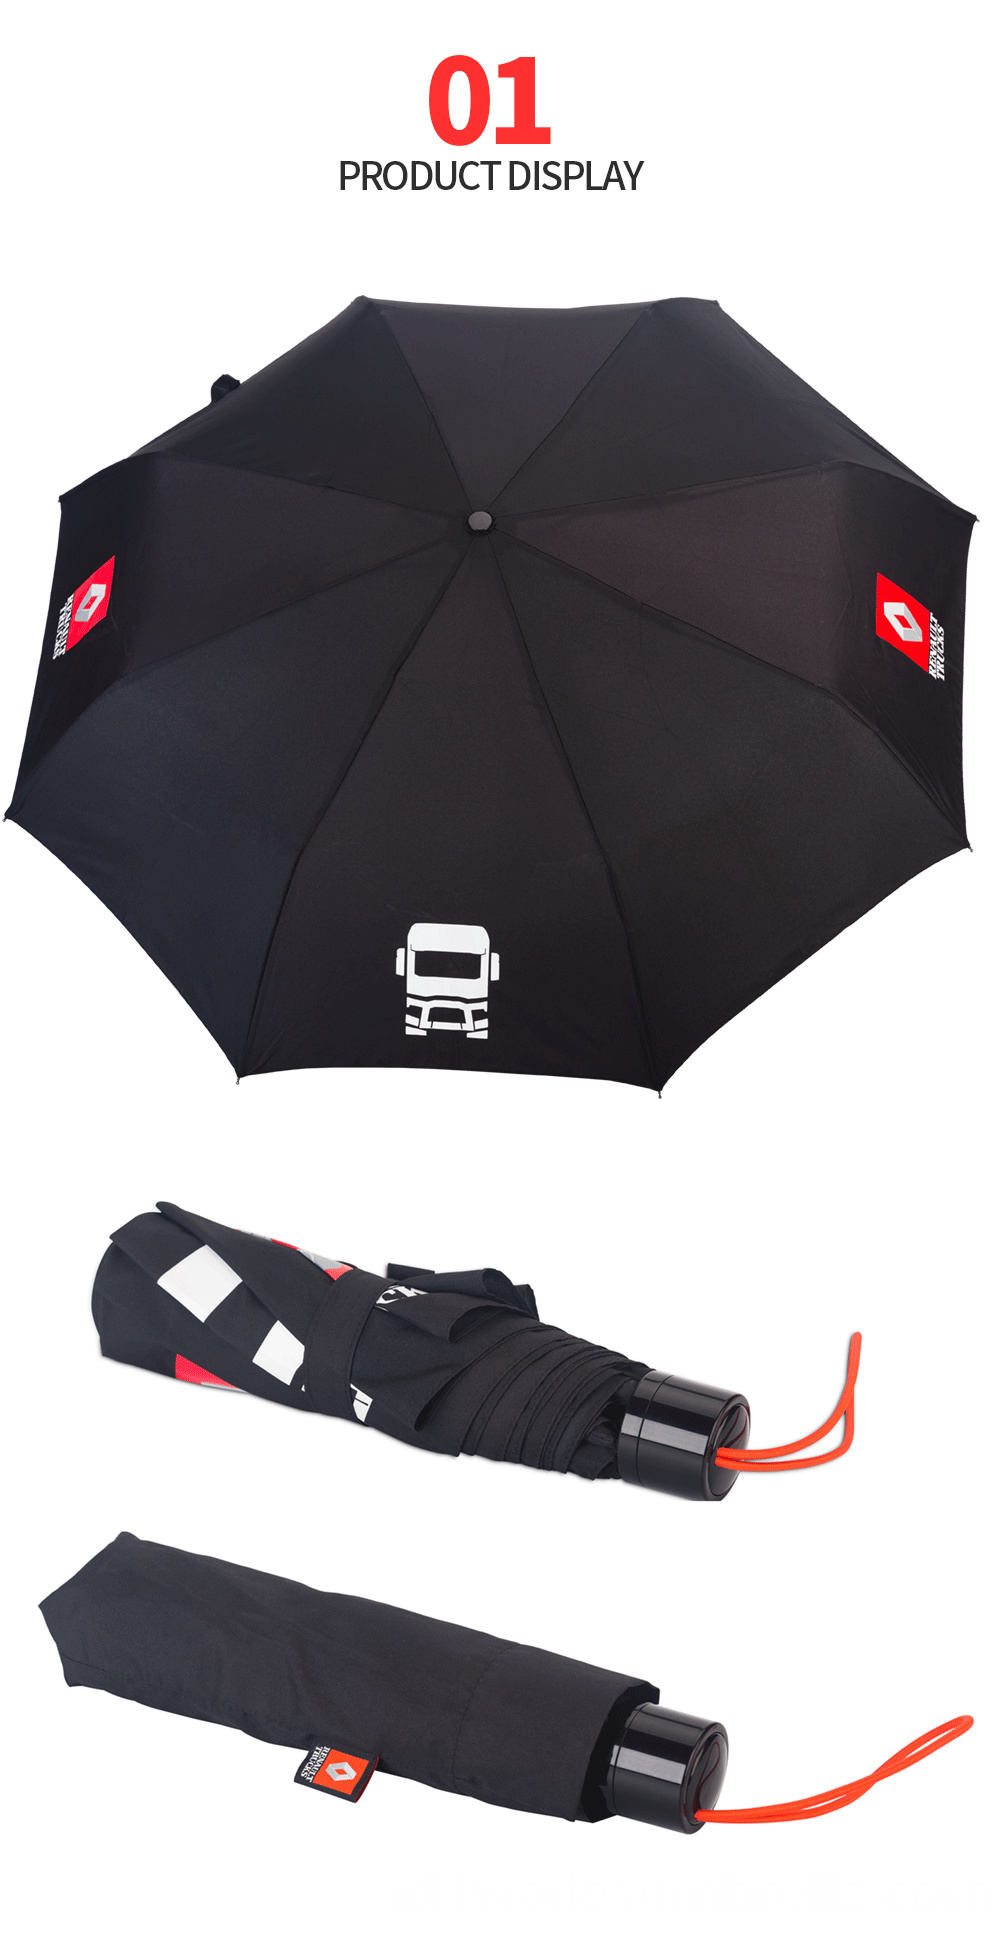 3 Folding Umbrella Promotional Umbrella